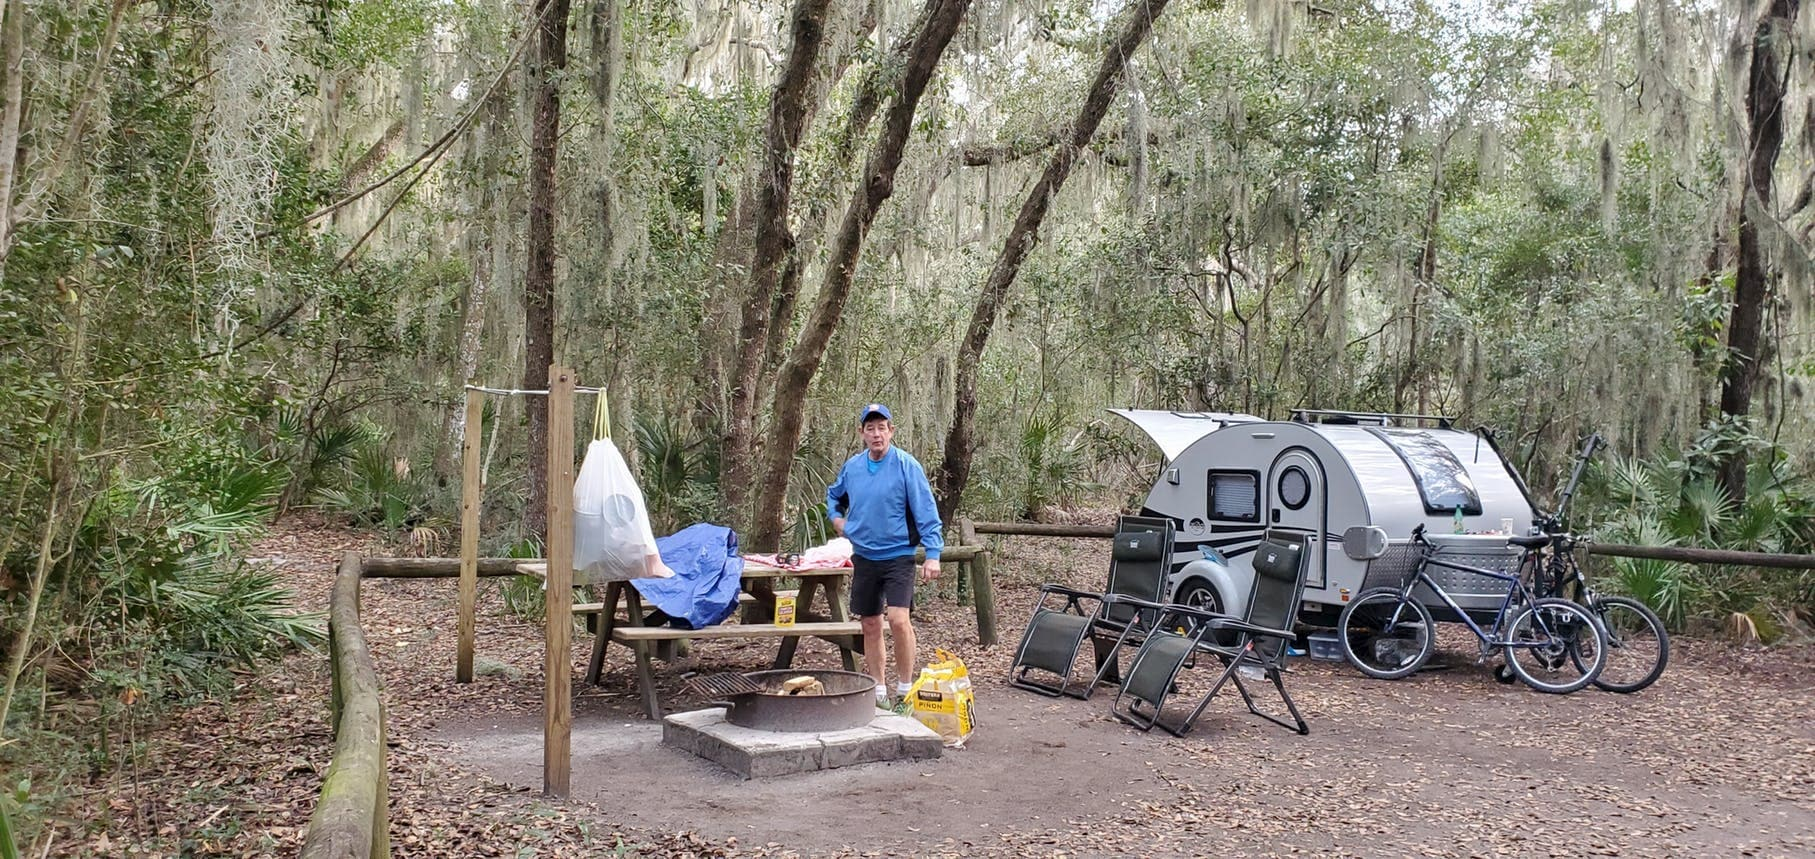 Man beside a teardrop trailer in mossy forested campsite.